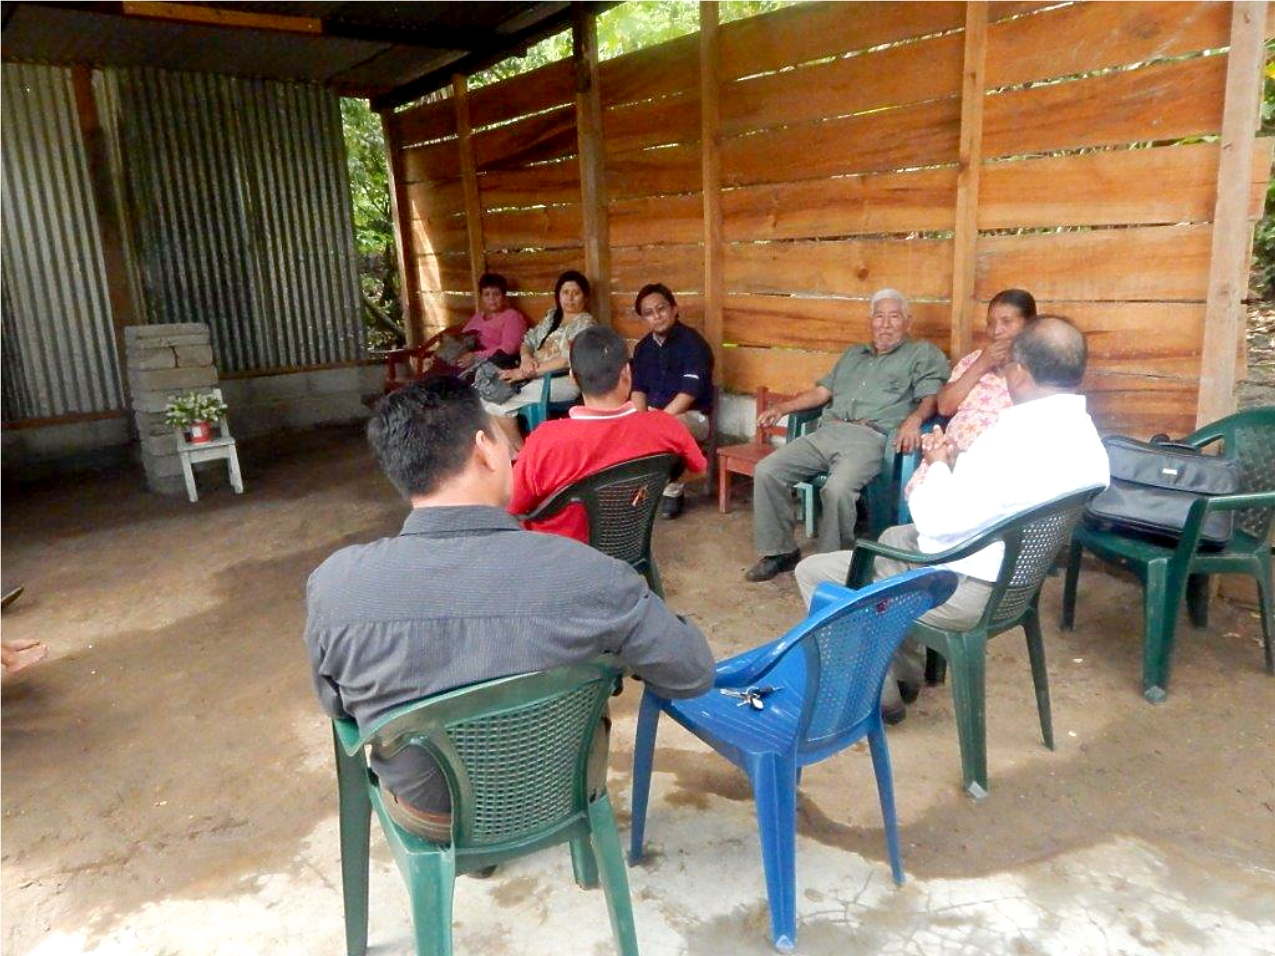 A-new-mission-station-from-the-church-in-Comolapa-Chiapas-2015